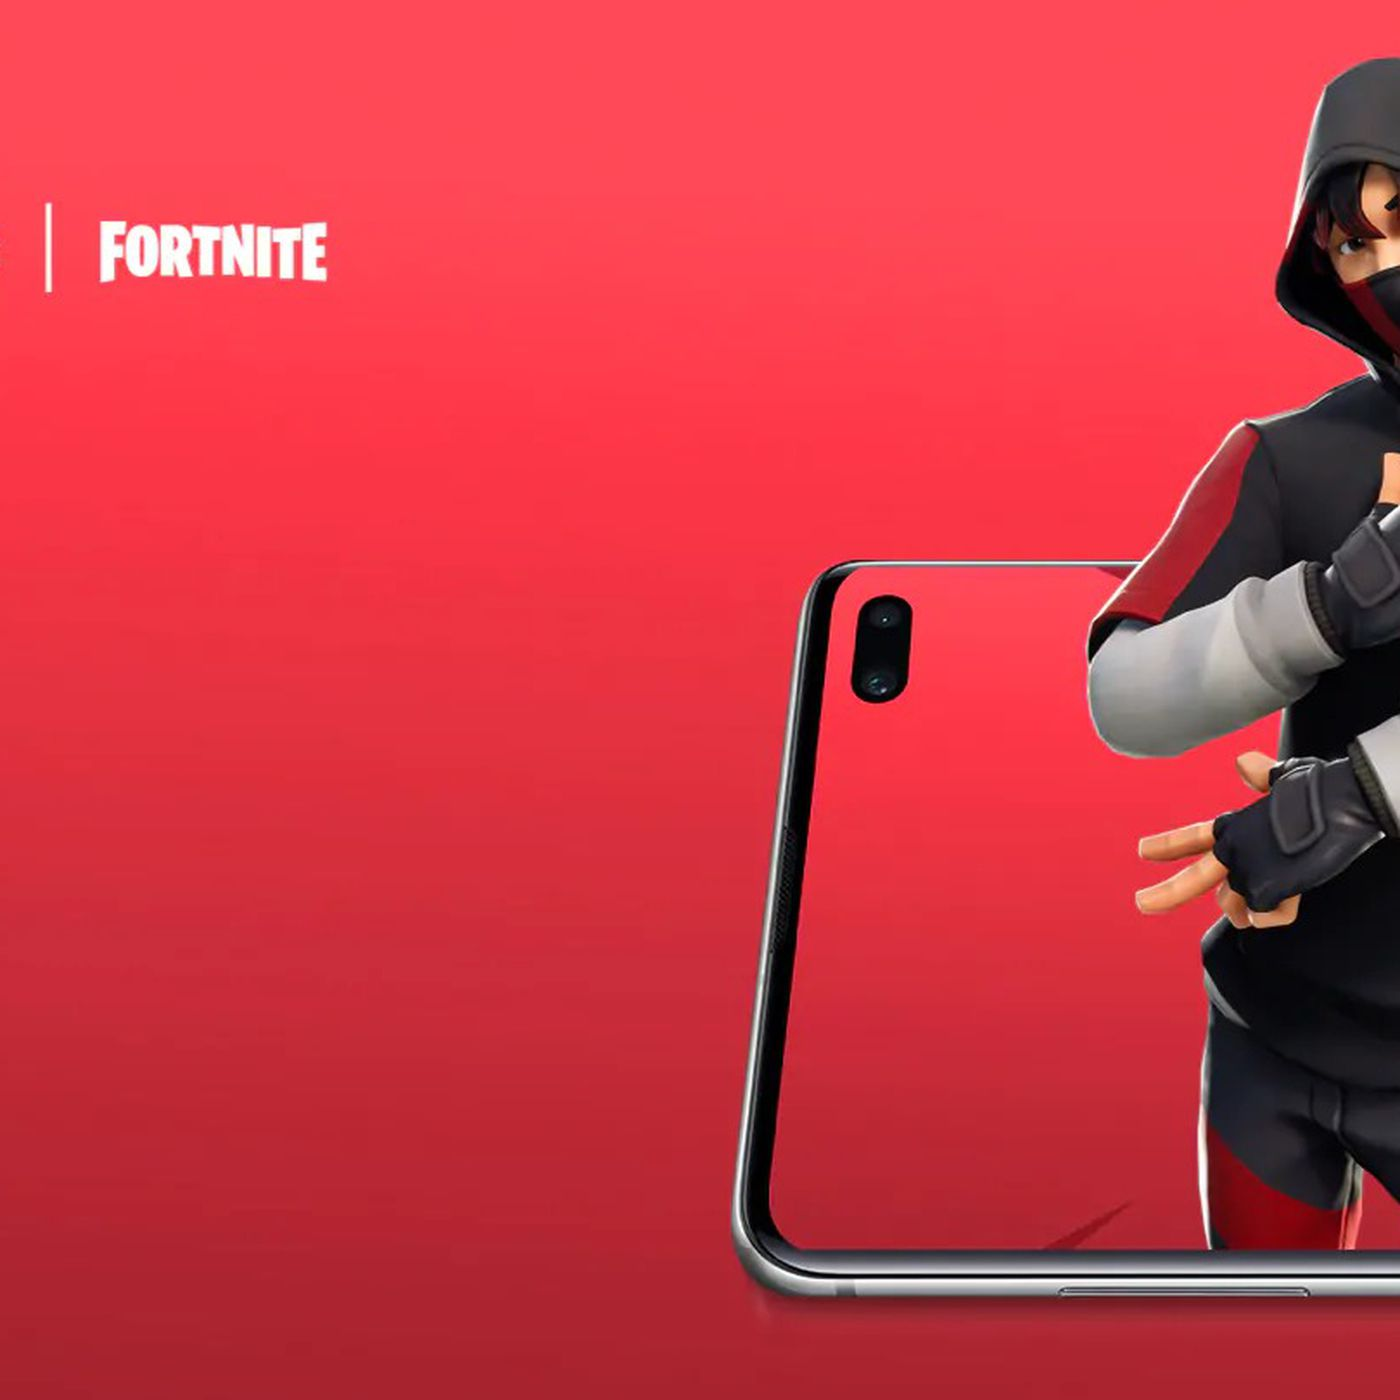 fortnite has an exclusive k pop skin for those who preorder any galaxy s10 phone - epic games fortnite samsung s10